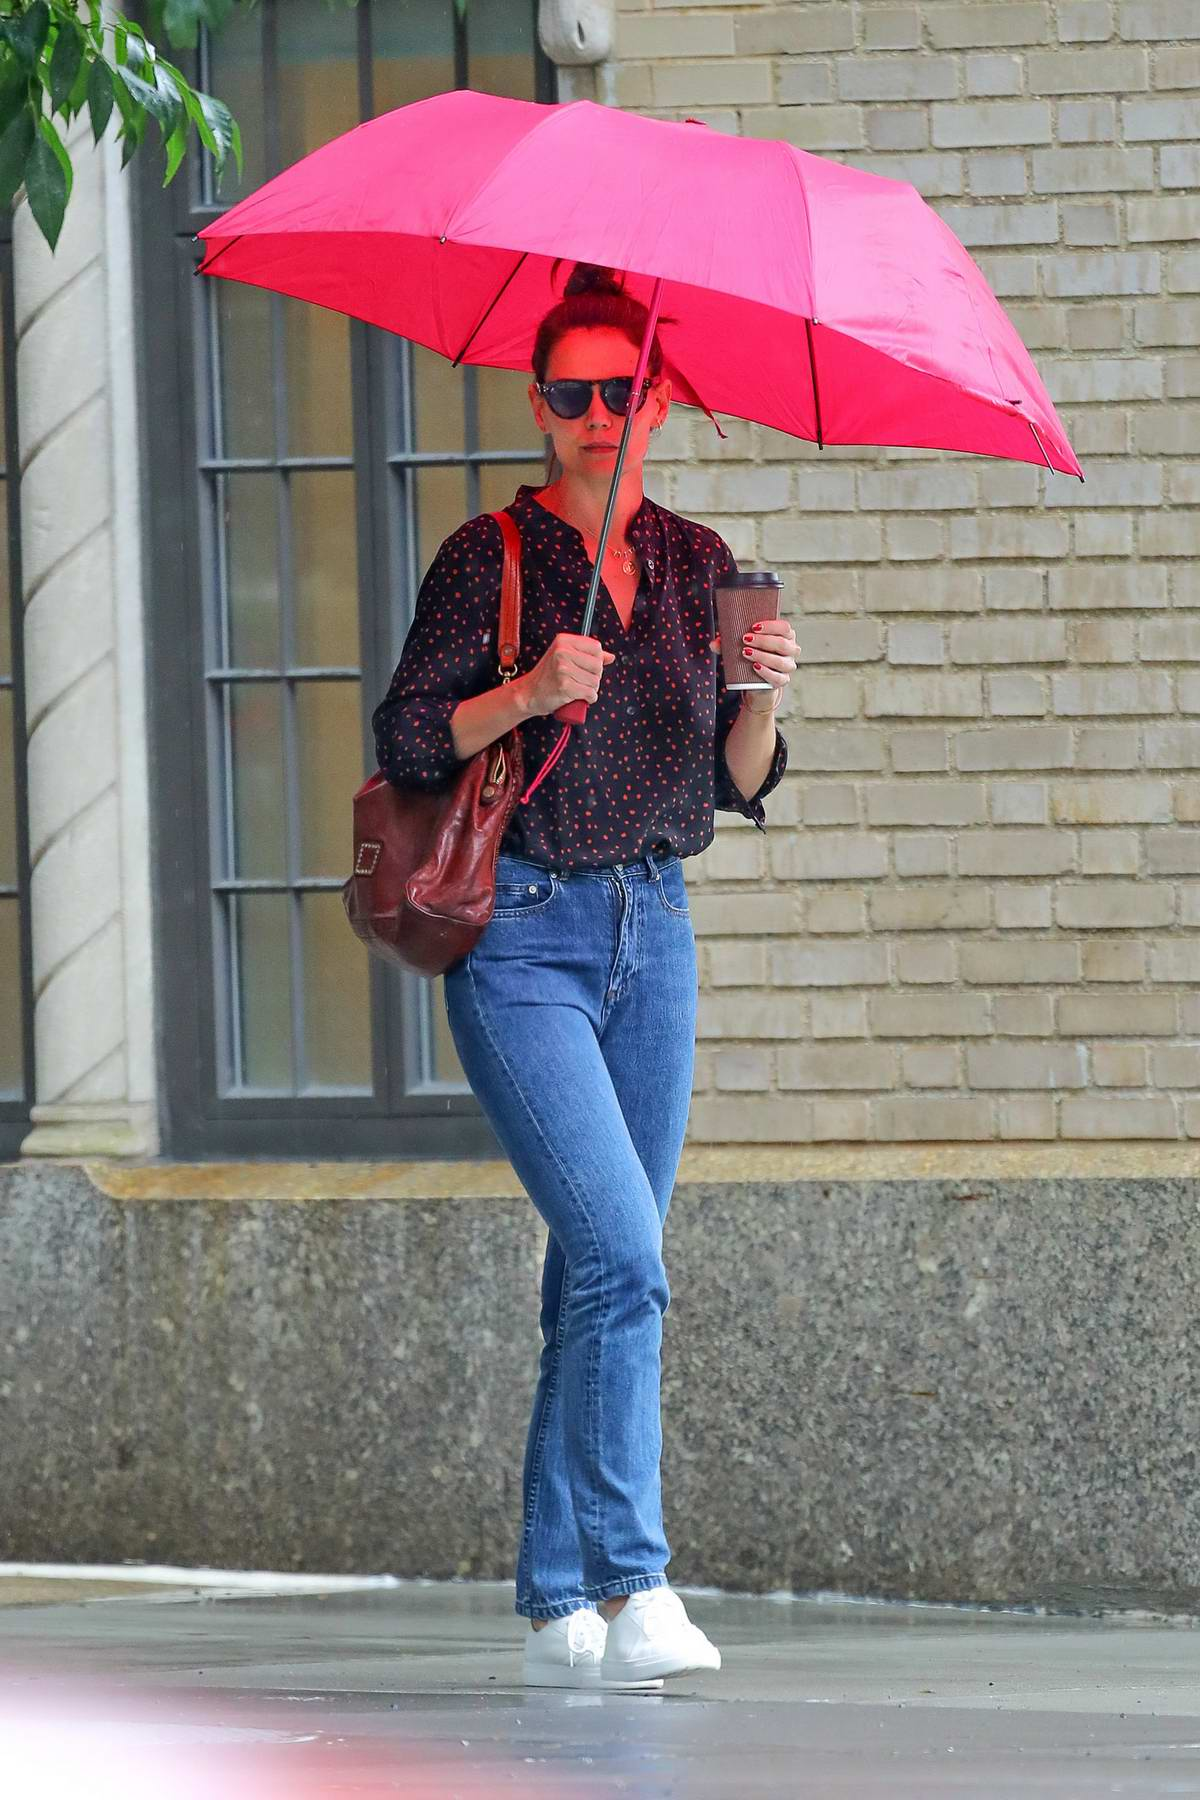 Katie Holmes sips on her coffee as she steps out on a rainy day with a bright pink umbrella in New York City